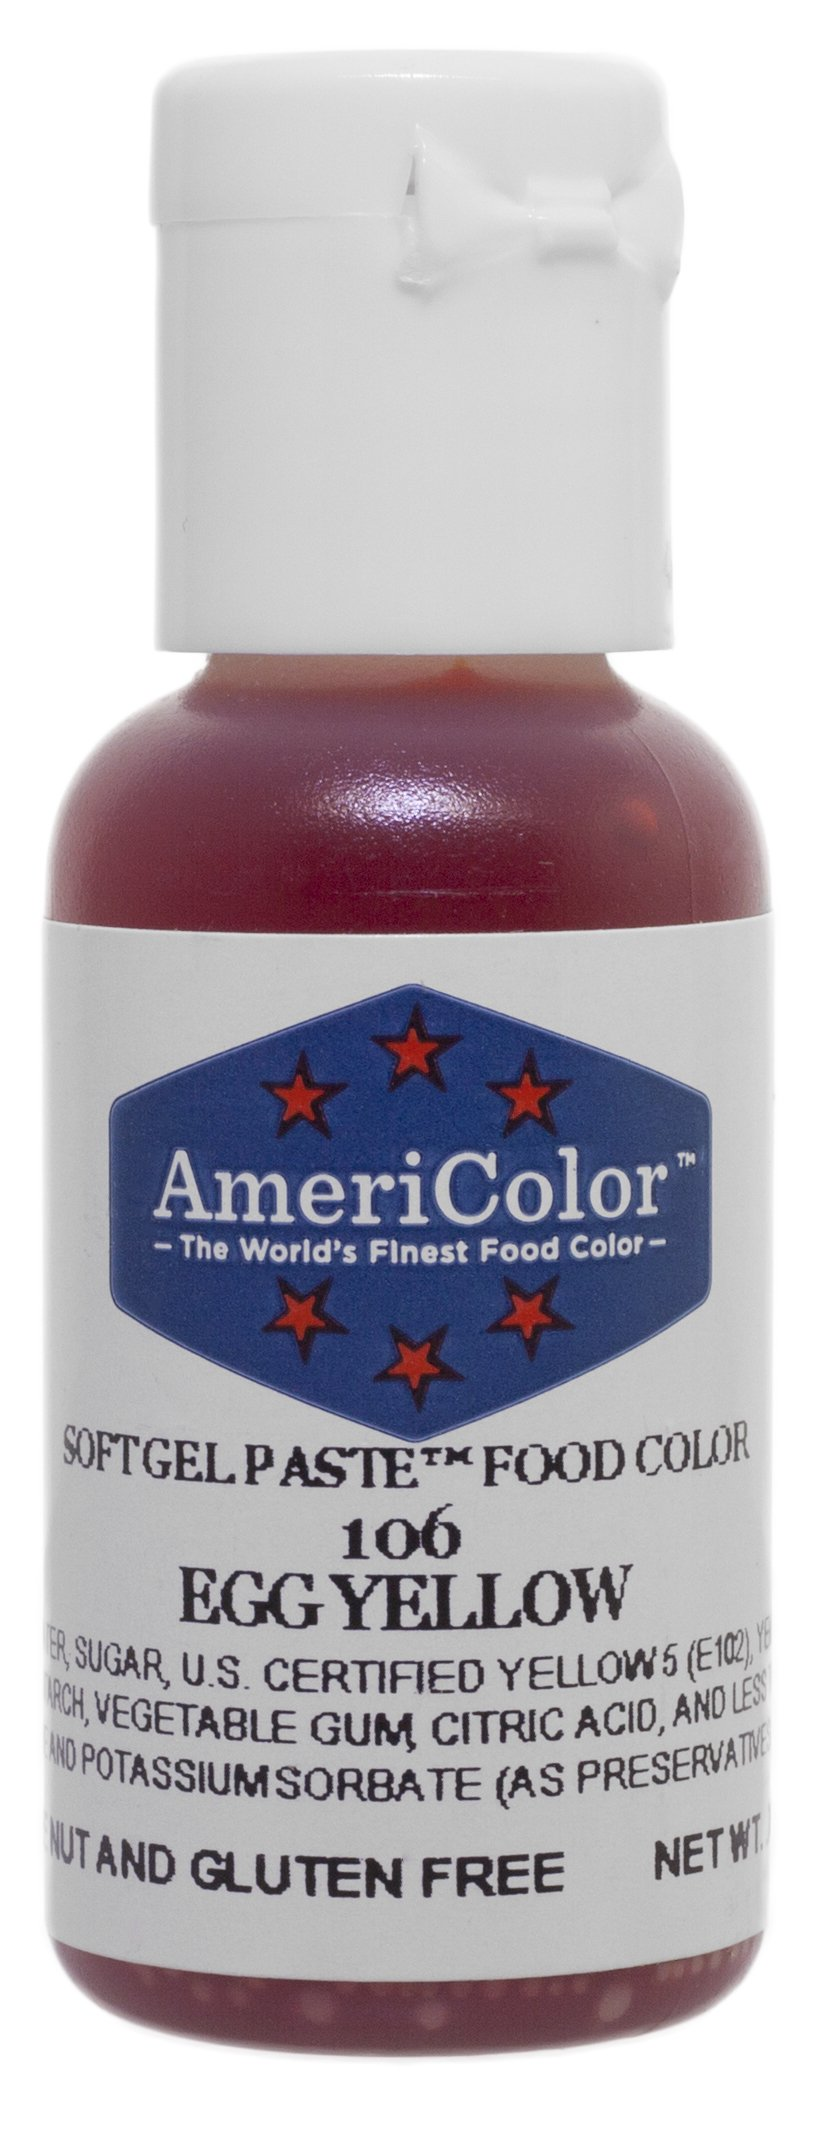 Americolor Soft Gel Paste Food Color, .75-Ounce, Egg Yellow